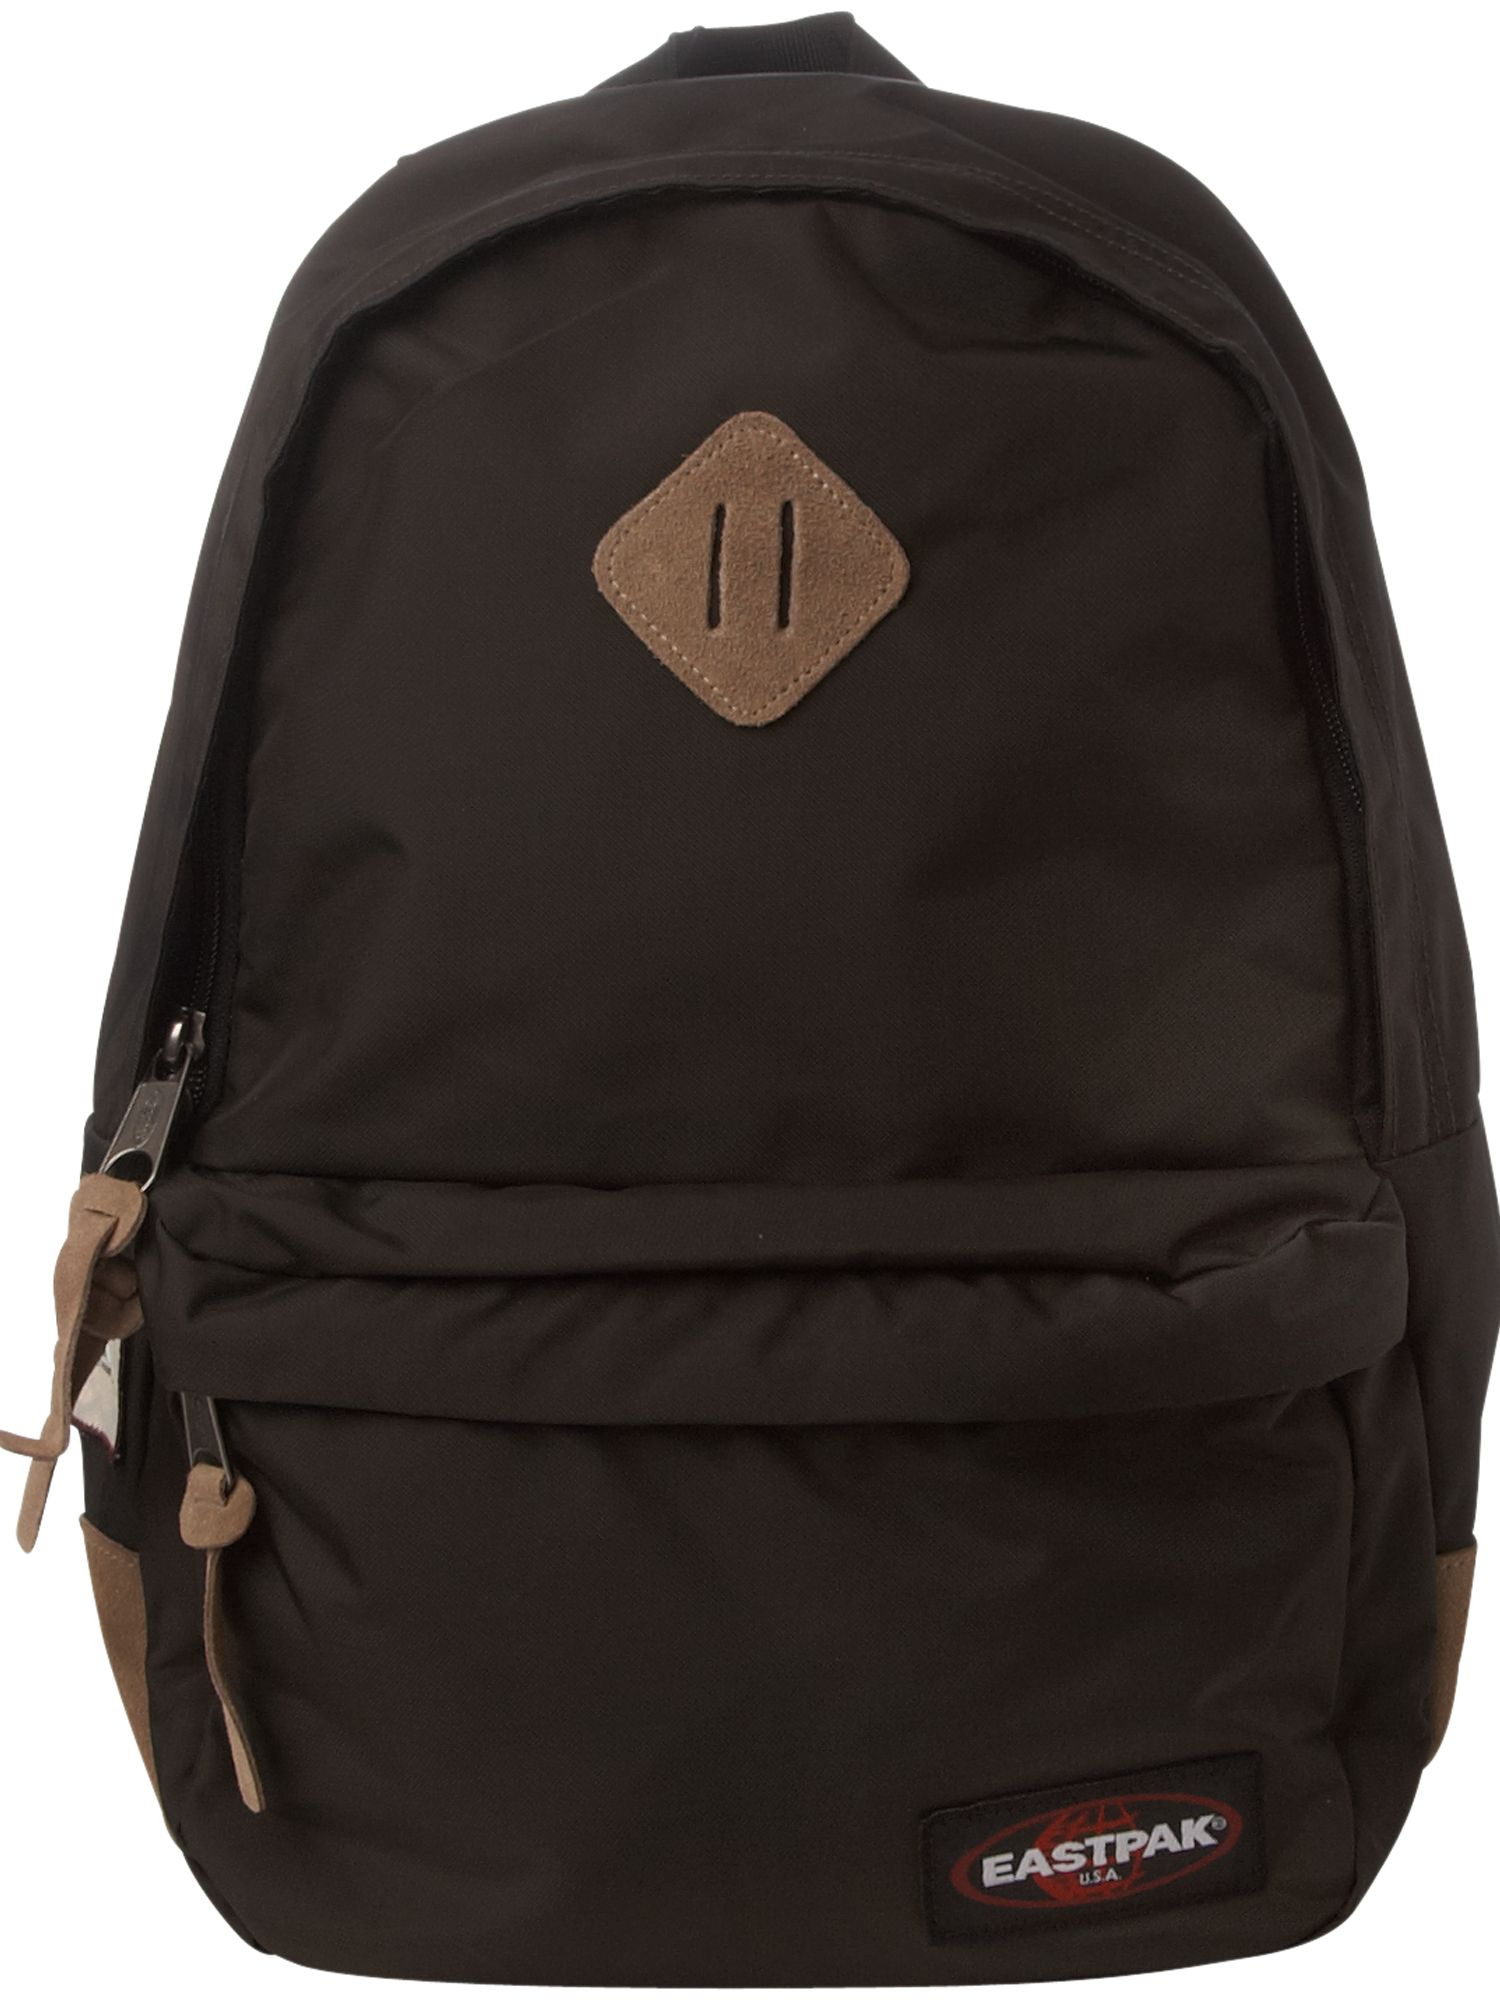 Rucksack with contrast base